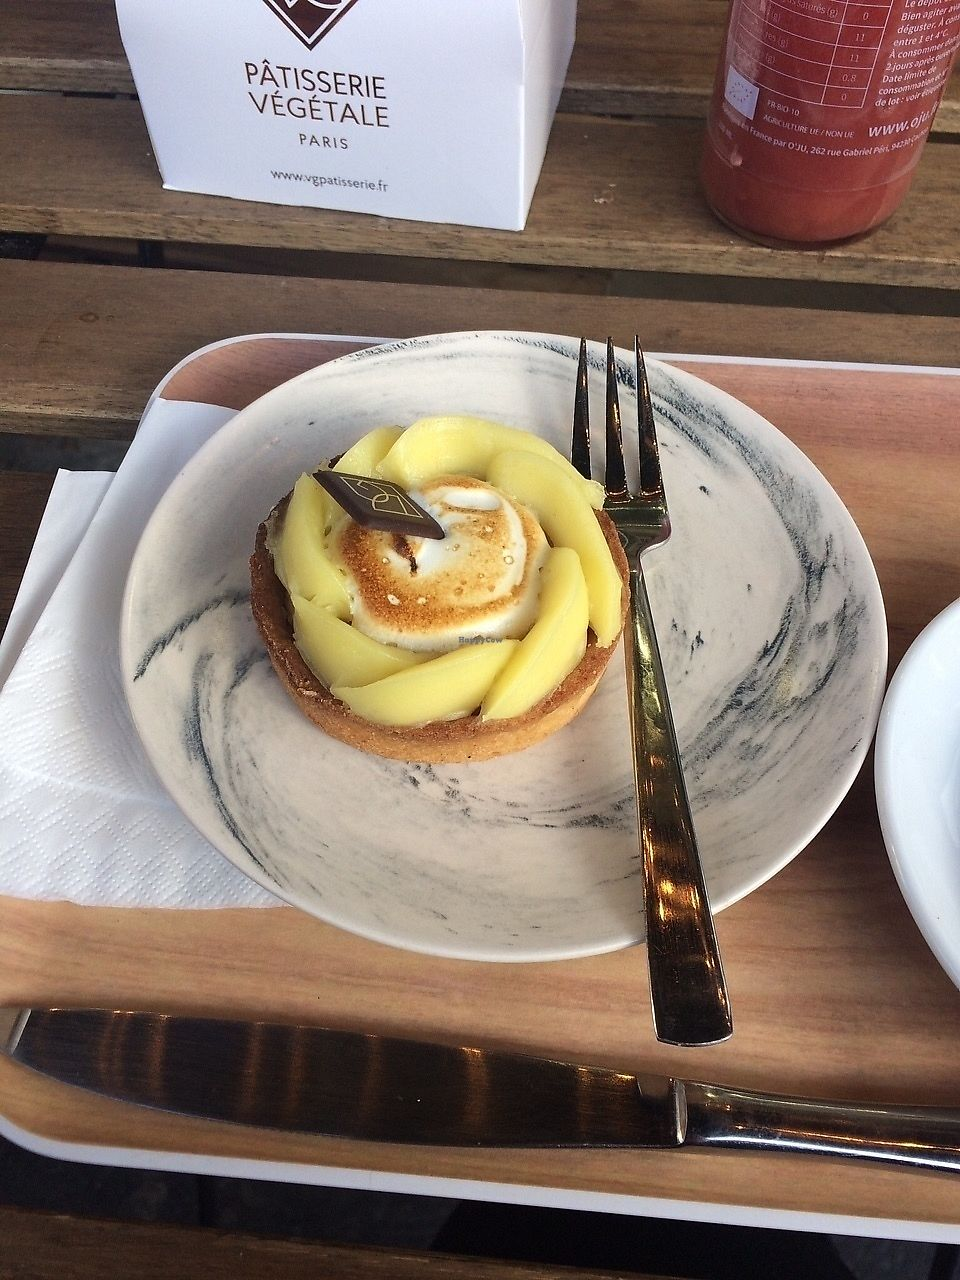 "Photo of VG Pâtisserie  by <a href=""/members/profile/sabrinajh"">sabrinajh</a> <br/>Lemon meringue tart <br/> December 5, 2017  - <a href='/contact/abuse/image/90318/332498'>Report</a>"